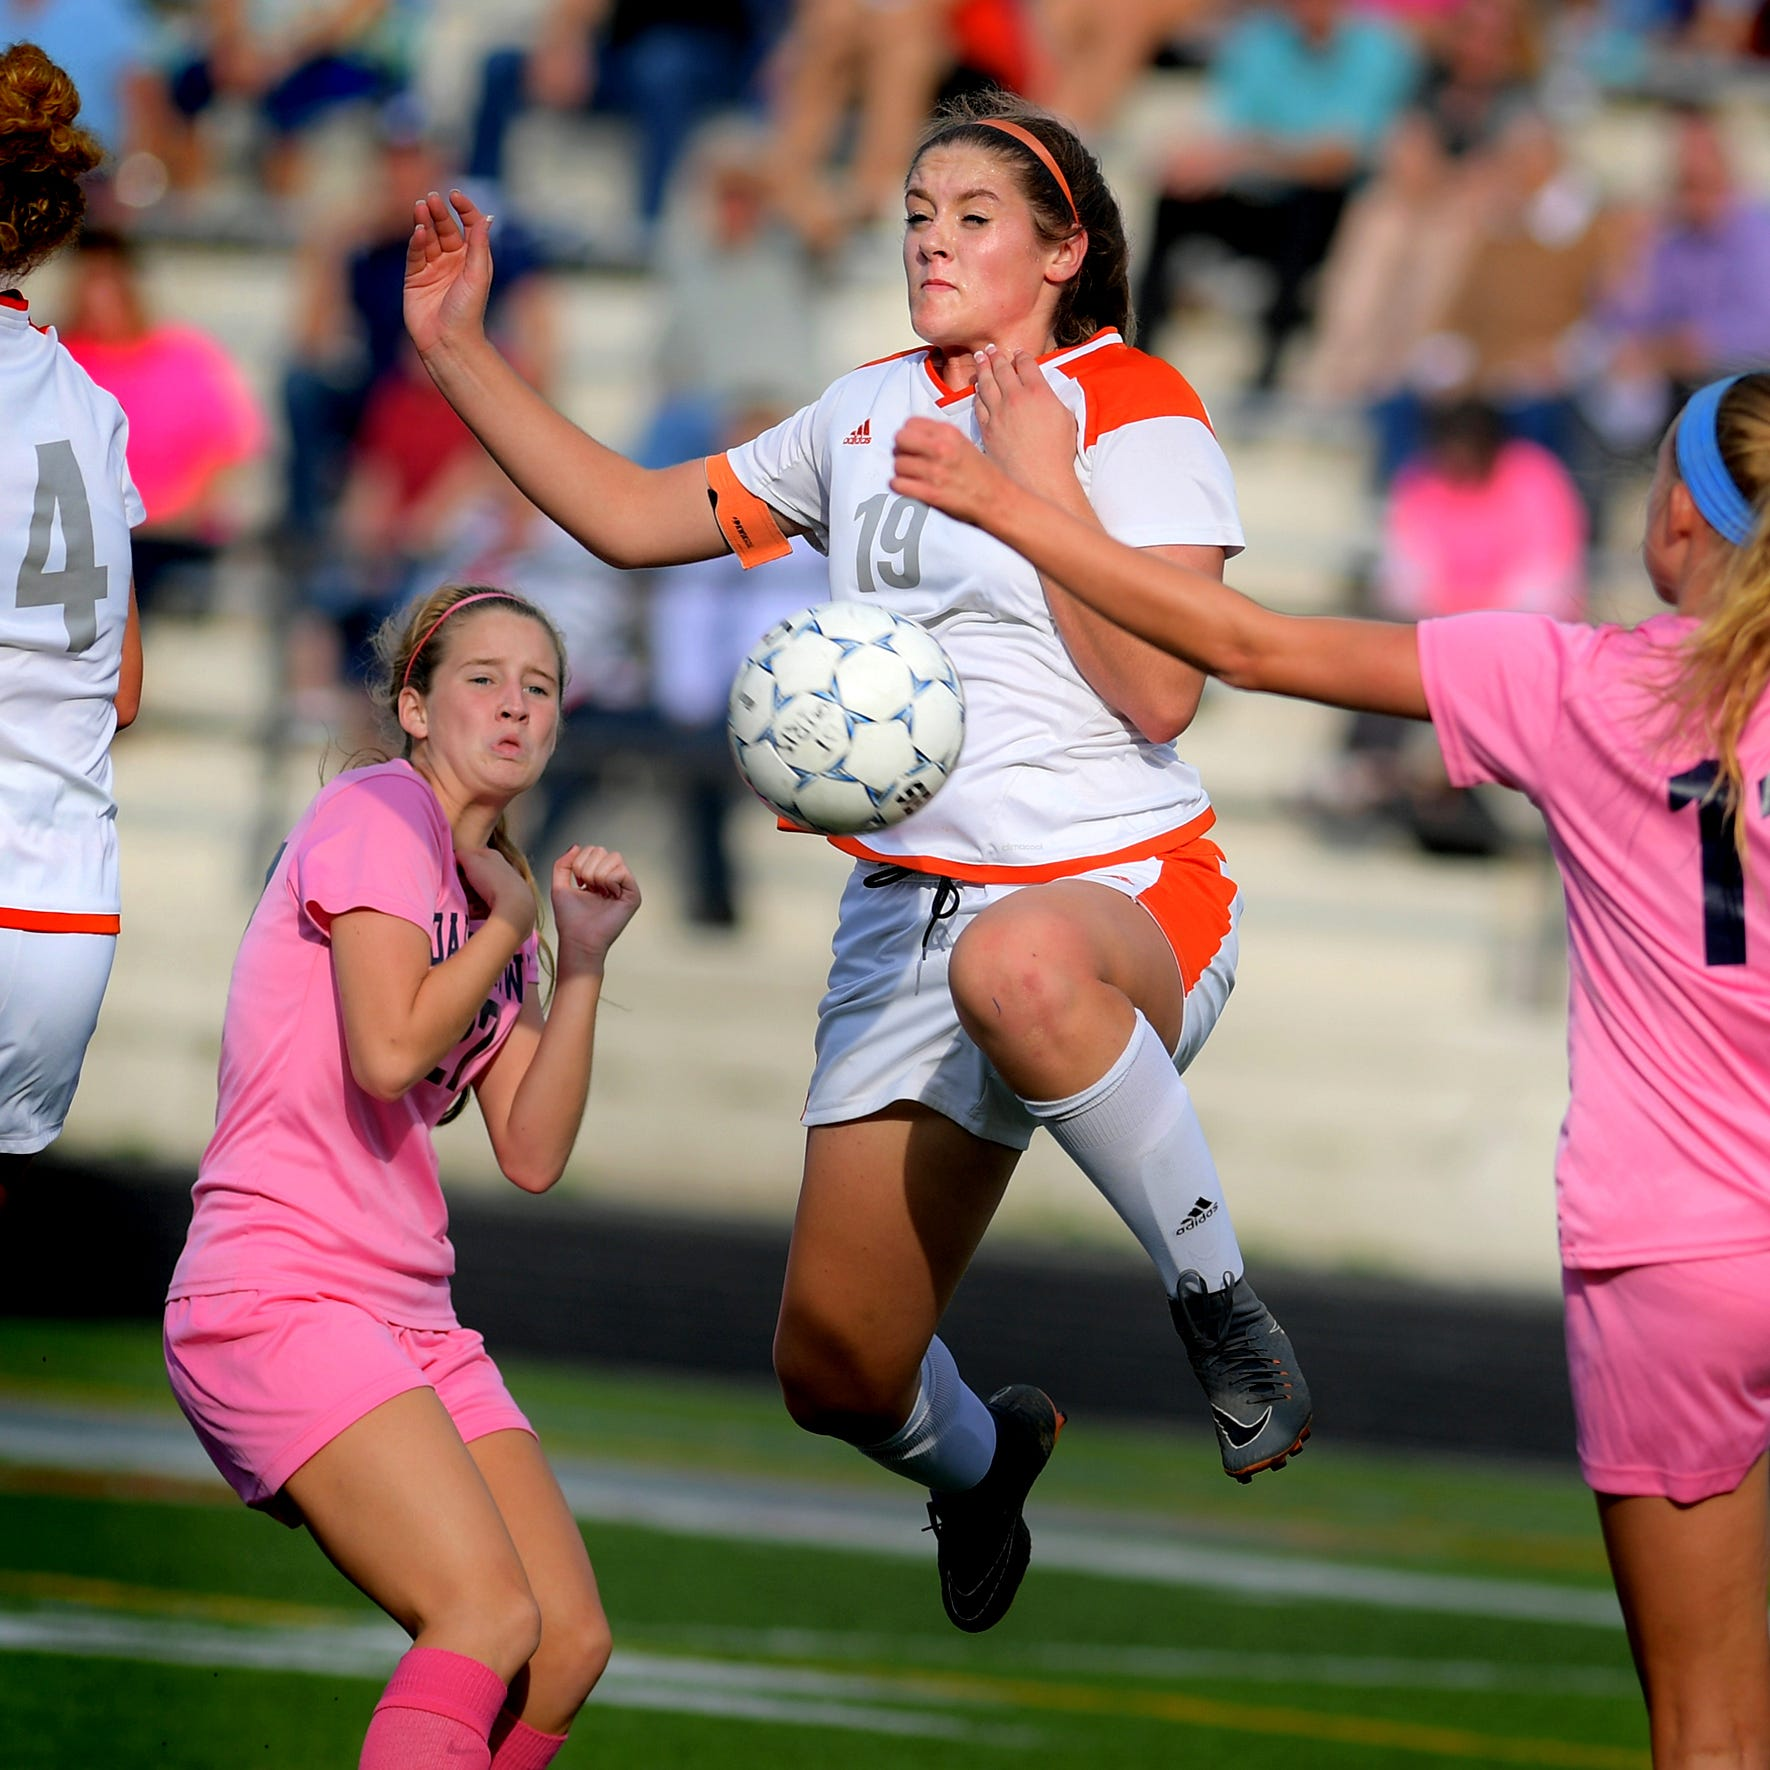 Soccer roundup, Tuesday, Oct. 9: Dallastown girls earn key win during Pink Out game